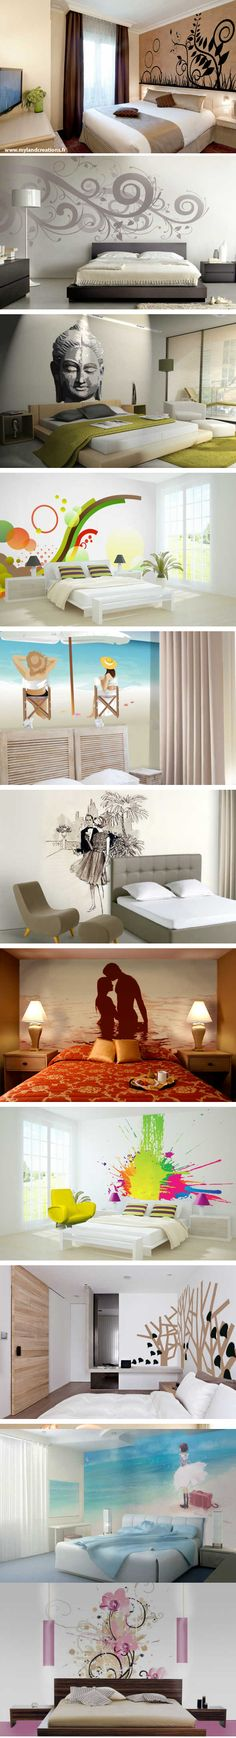 Projects of painted walls to decorate rooms, either for hotels, or else … - The source of information passes through us Design Art, Decoration, Sweet Home, Diy Projects, Room Decor, Painted Walls, Baby Cakes, Décor Ideas, Ceilings